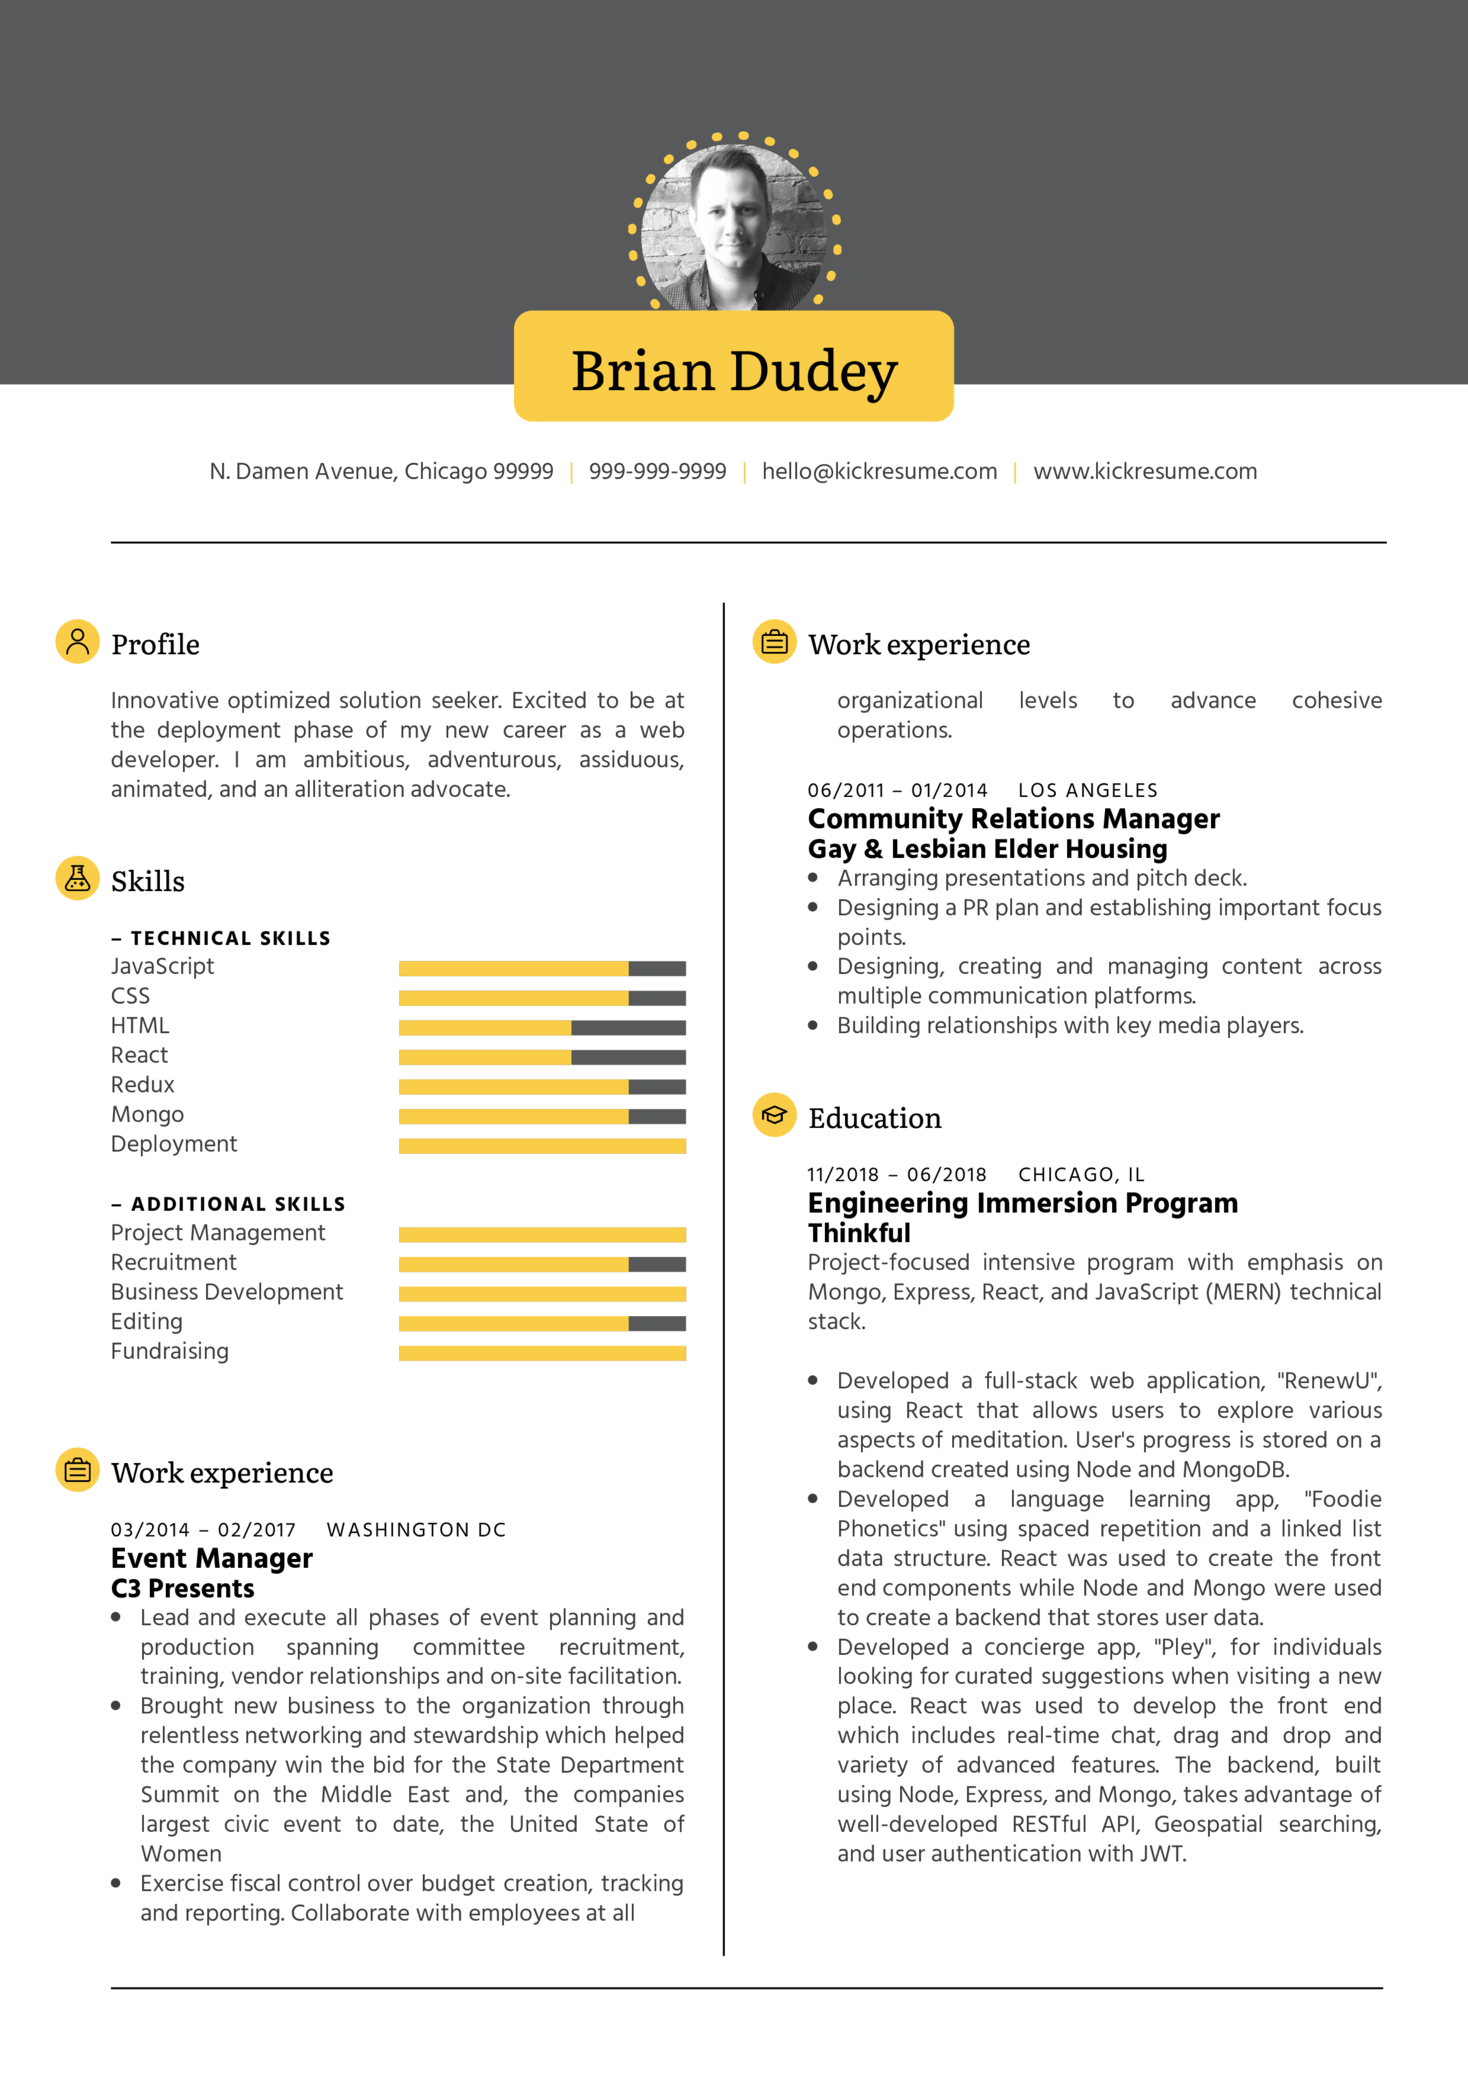 Resume Examples by Real People: Full stack developer CV sample